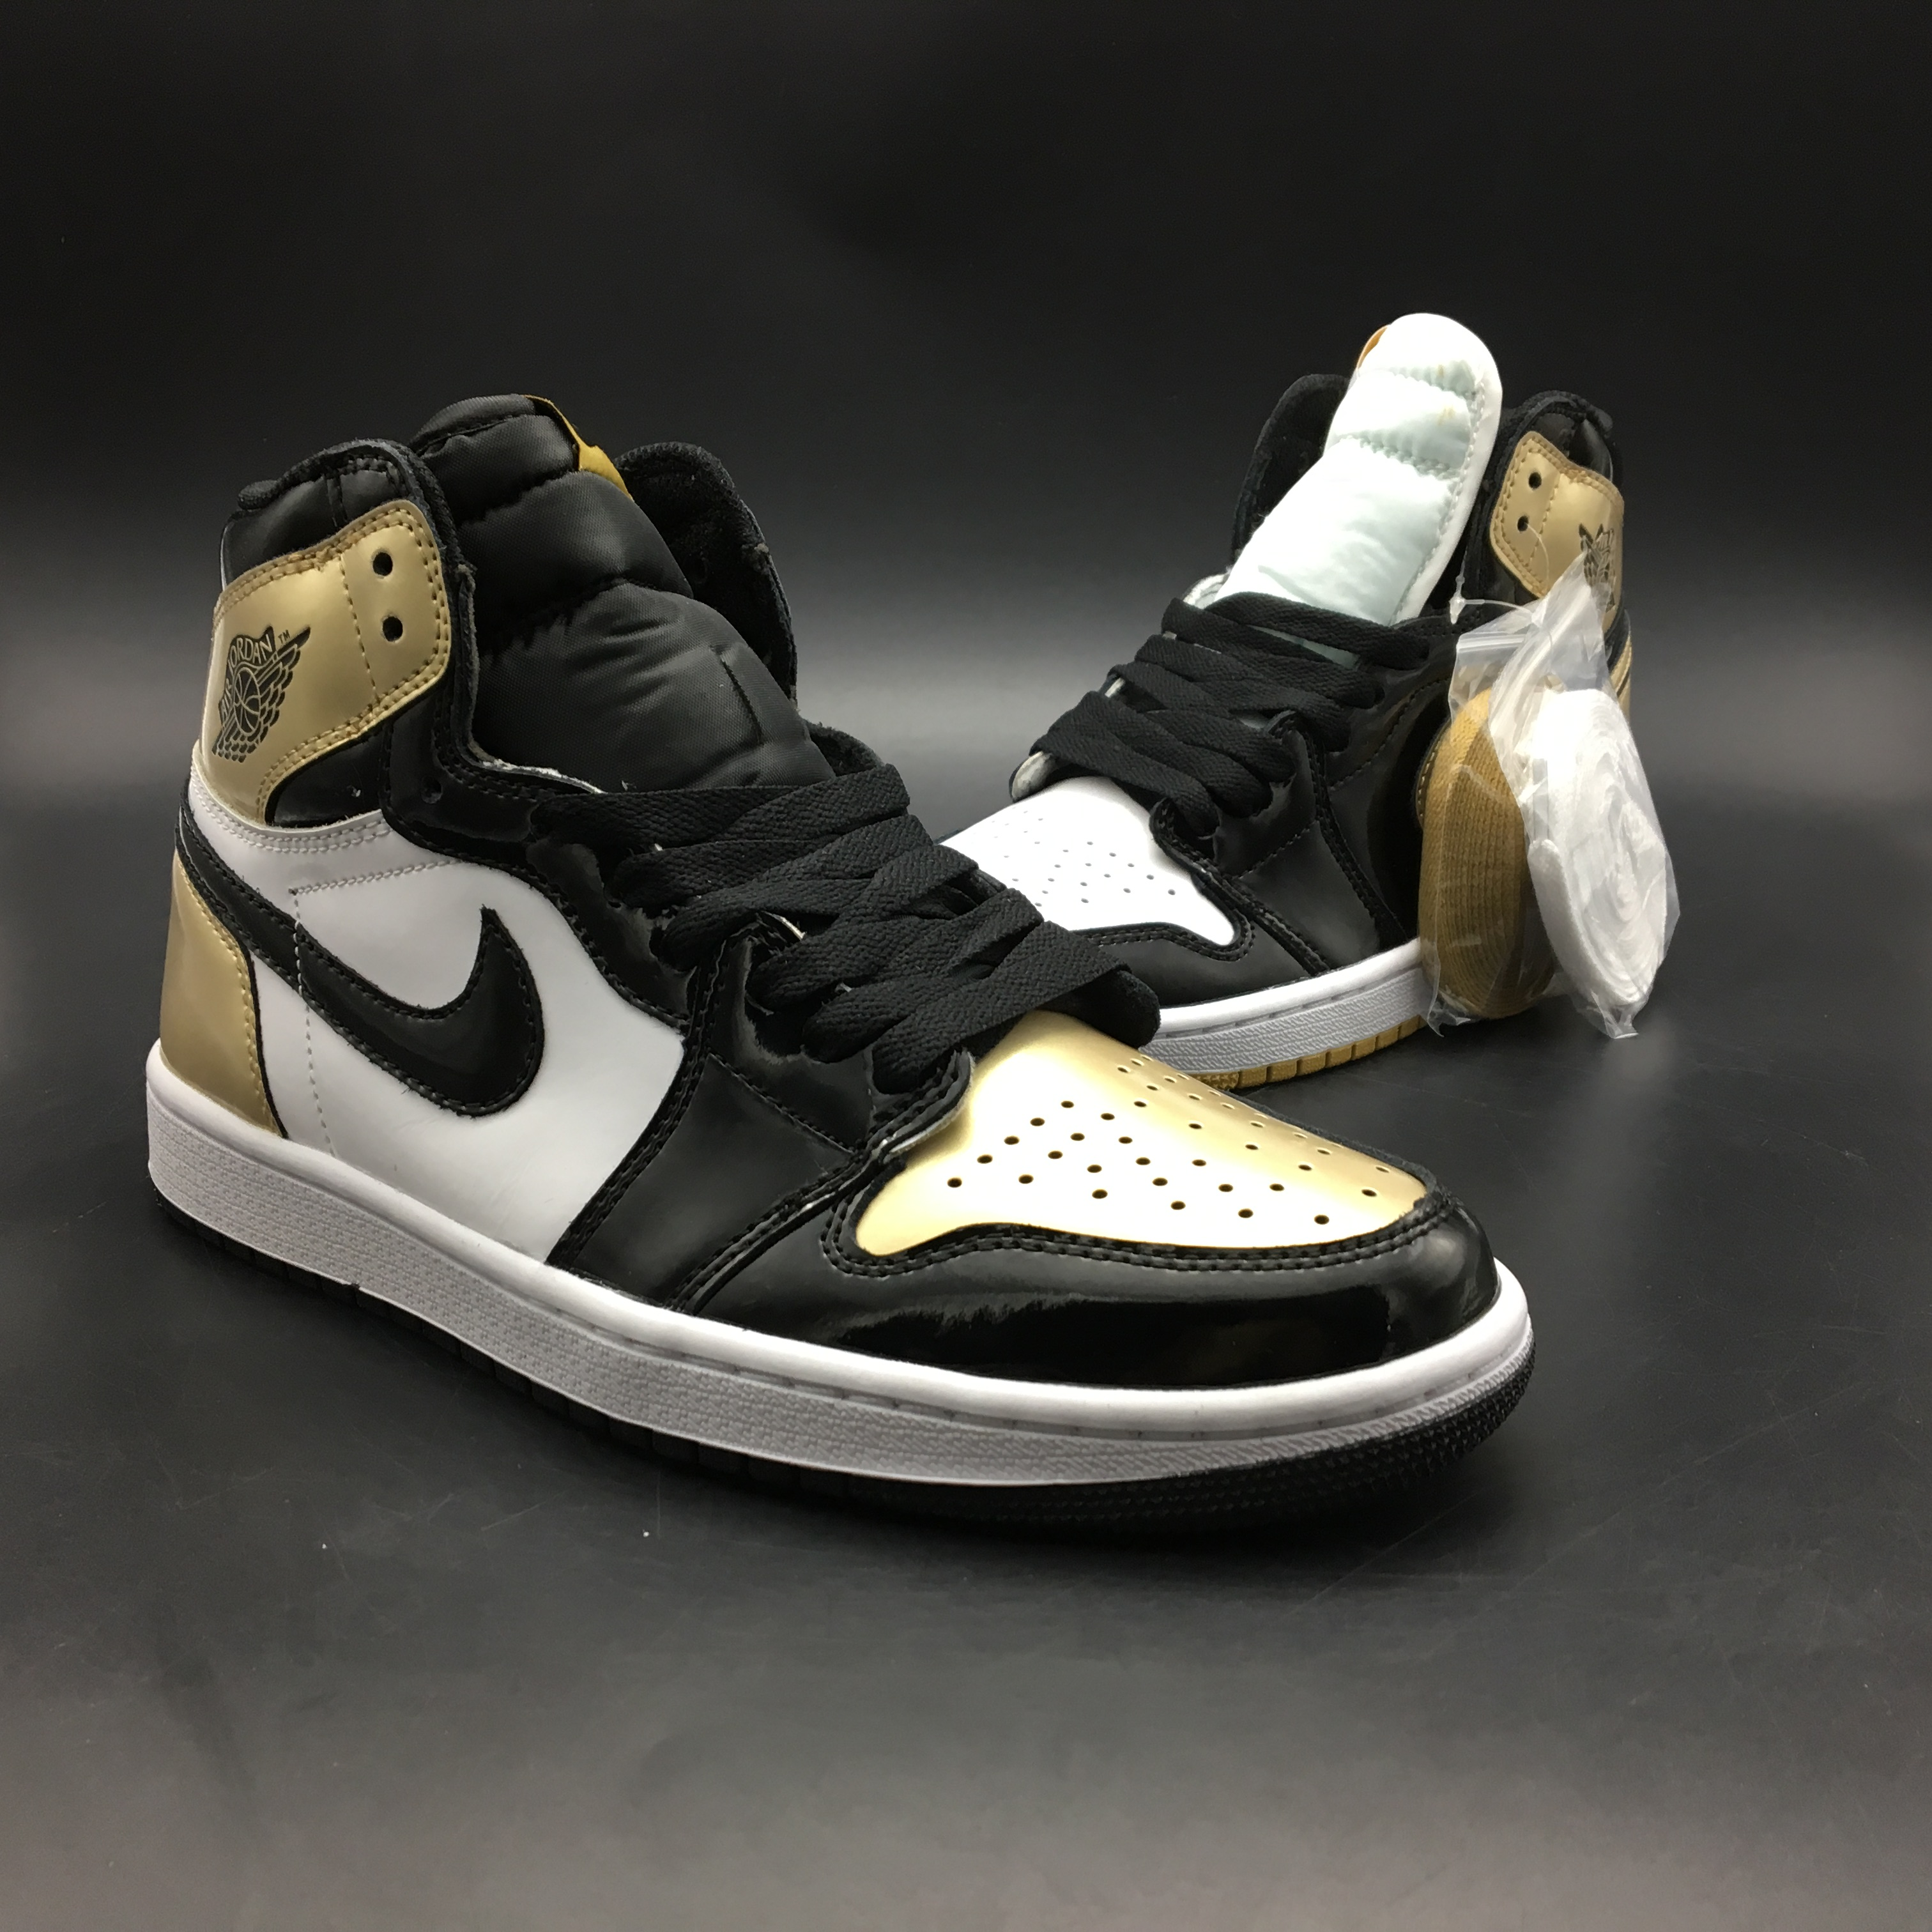 Air Jordan 1 Retro Black White Gold Shoes For Women